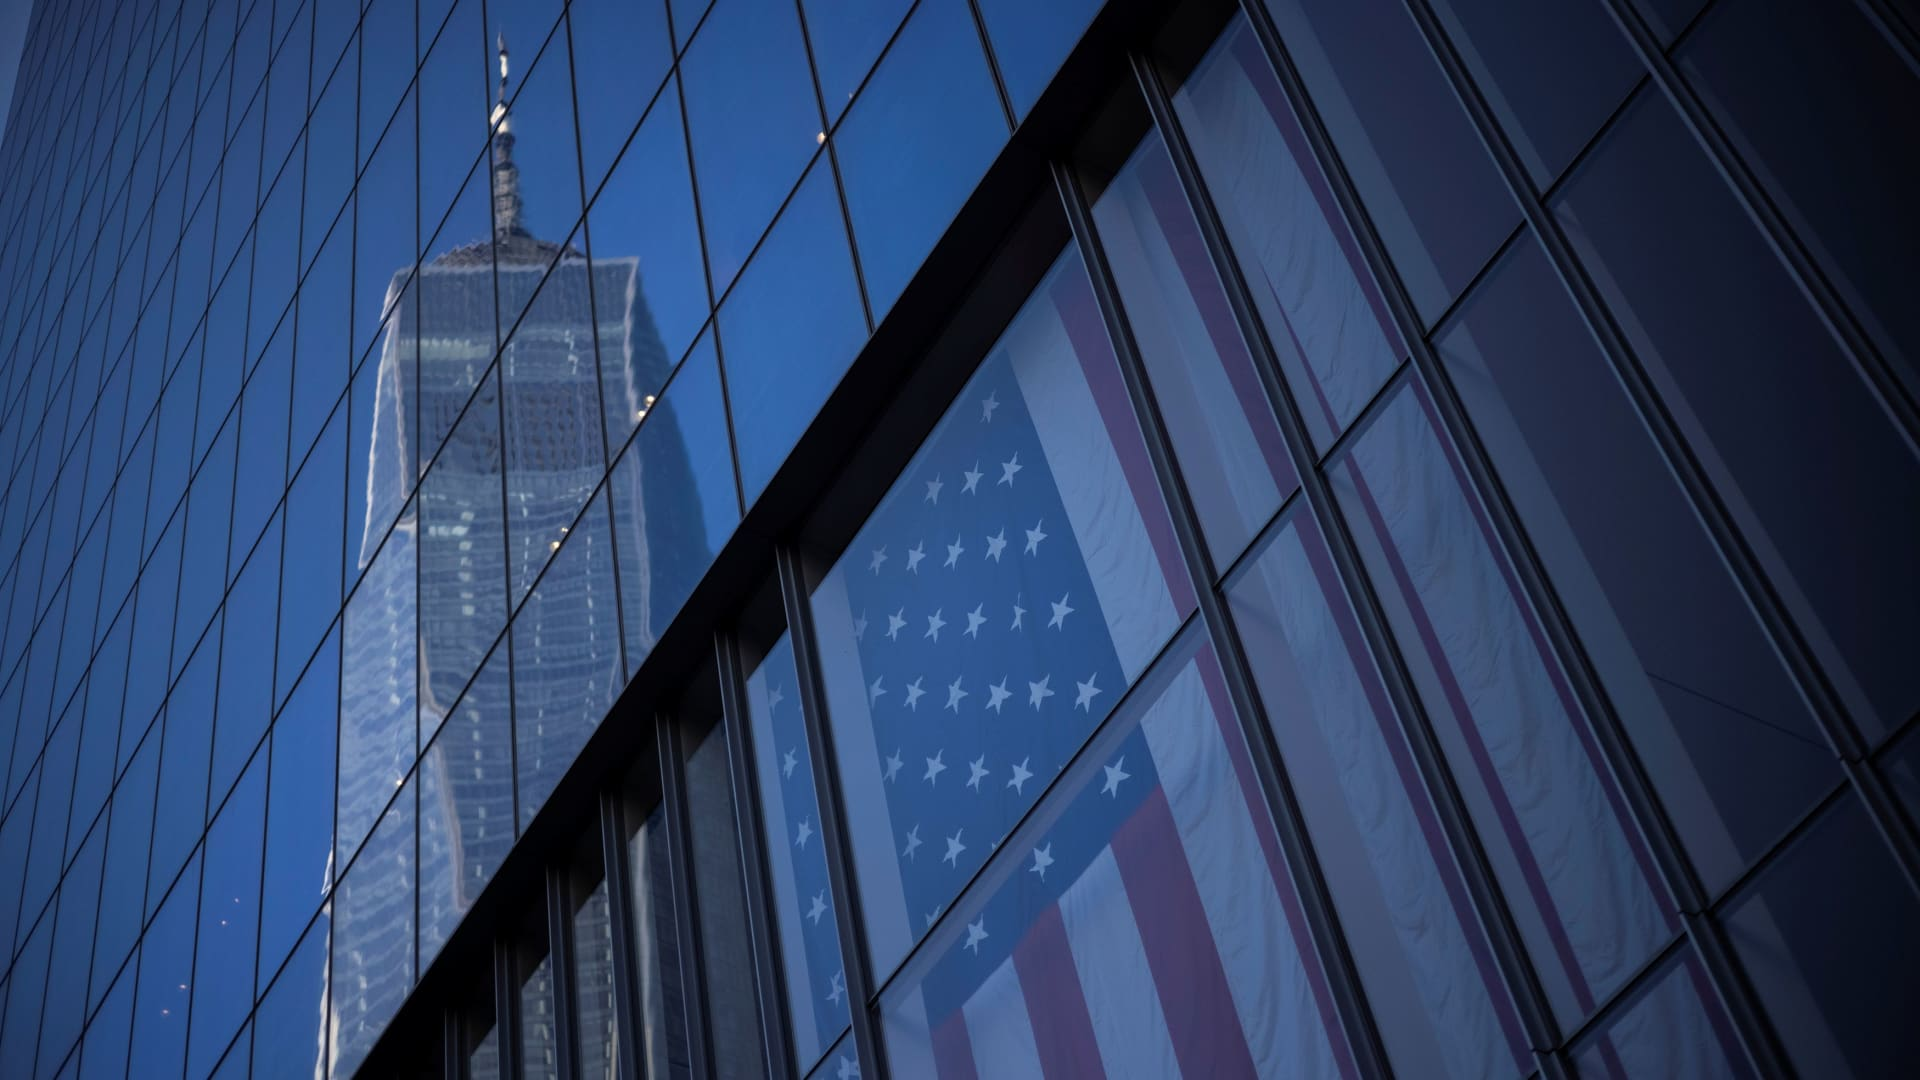 The One World Trade Center is reflected on a nearby building ahead of the 20th anniversary of the September 11 attacks in Manhattan, New York City, U.S., September 10, 2021.